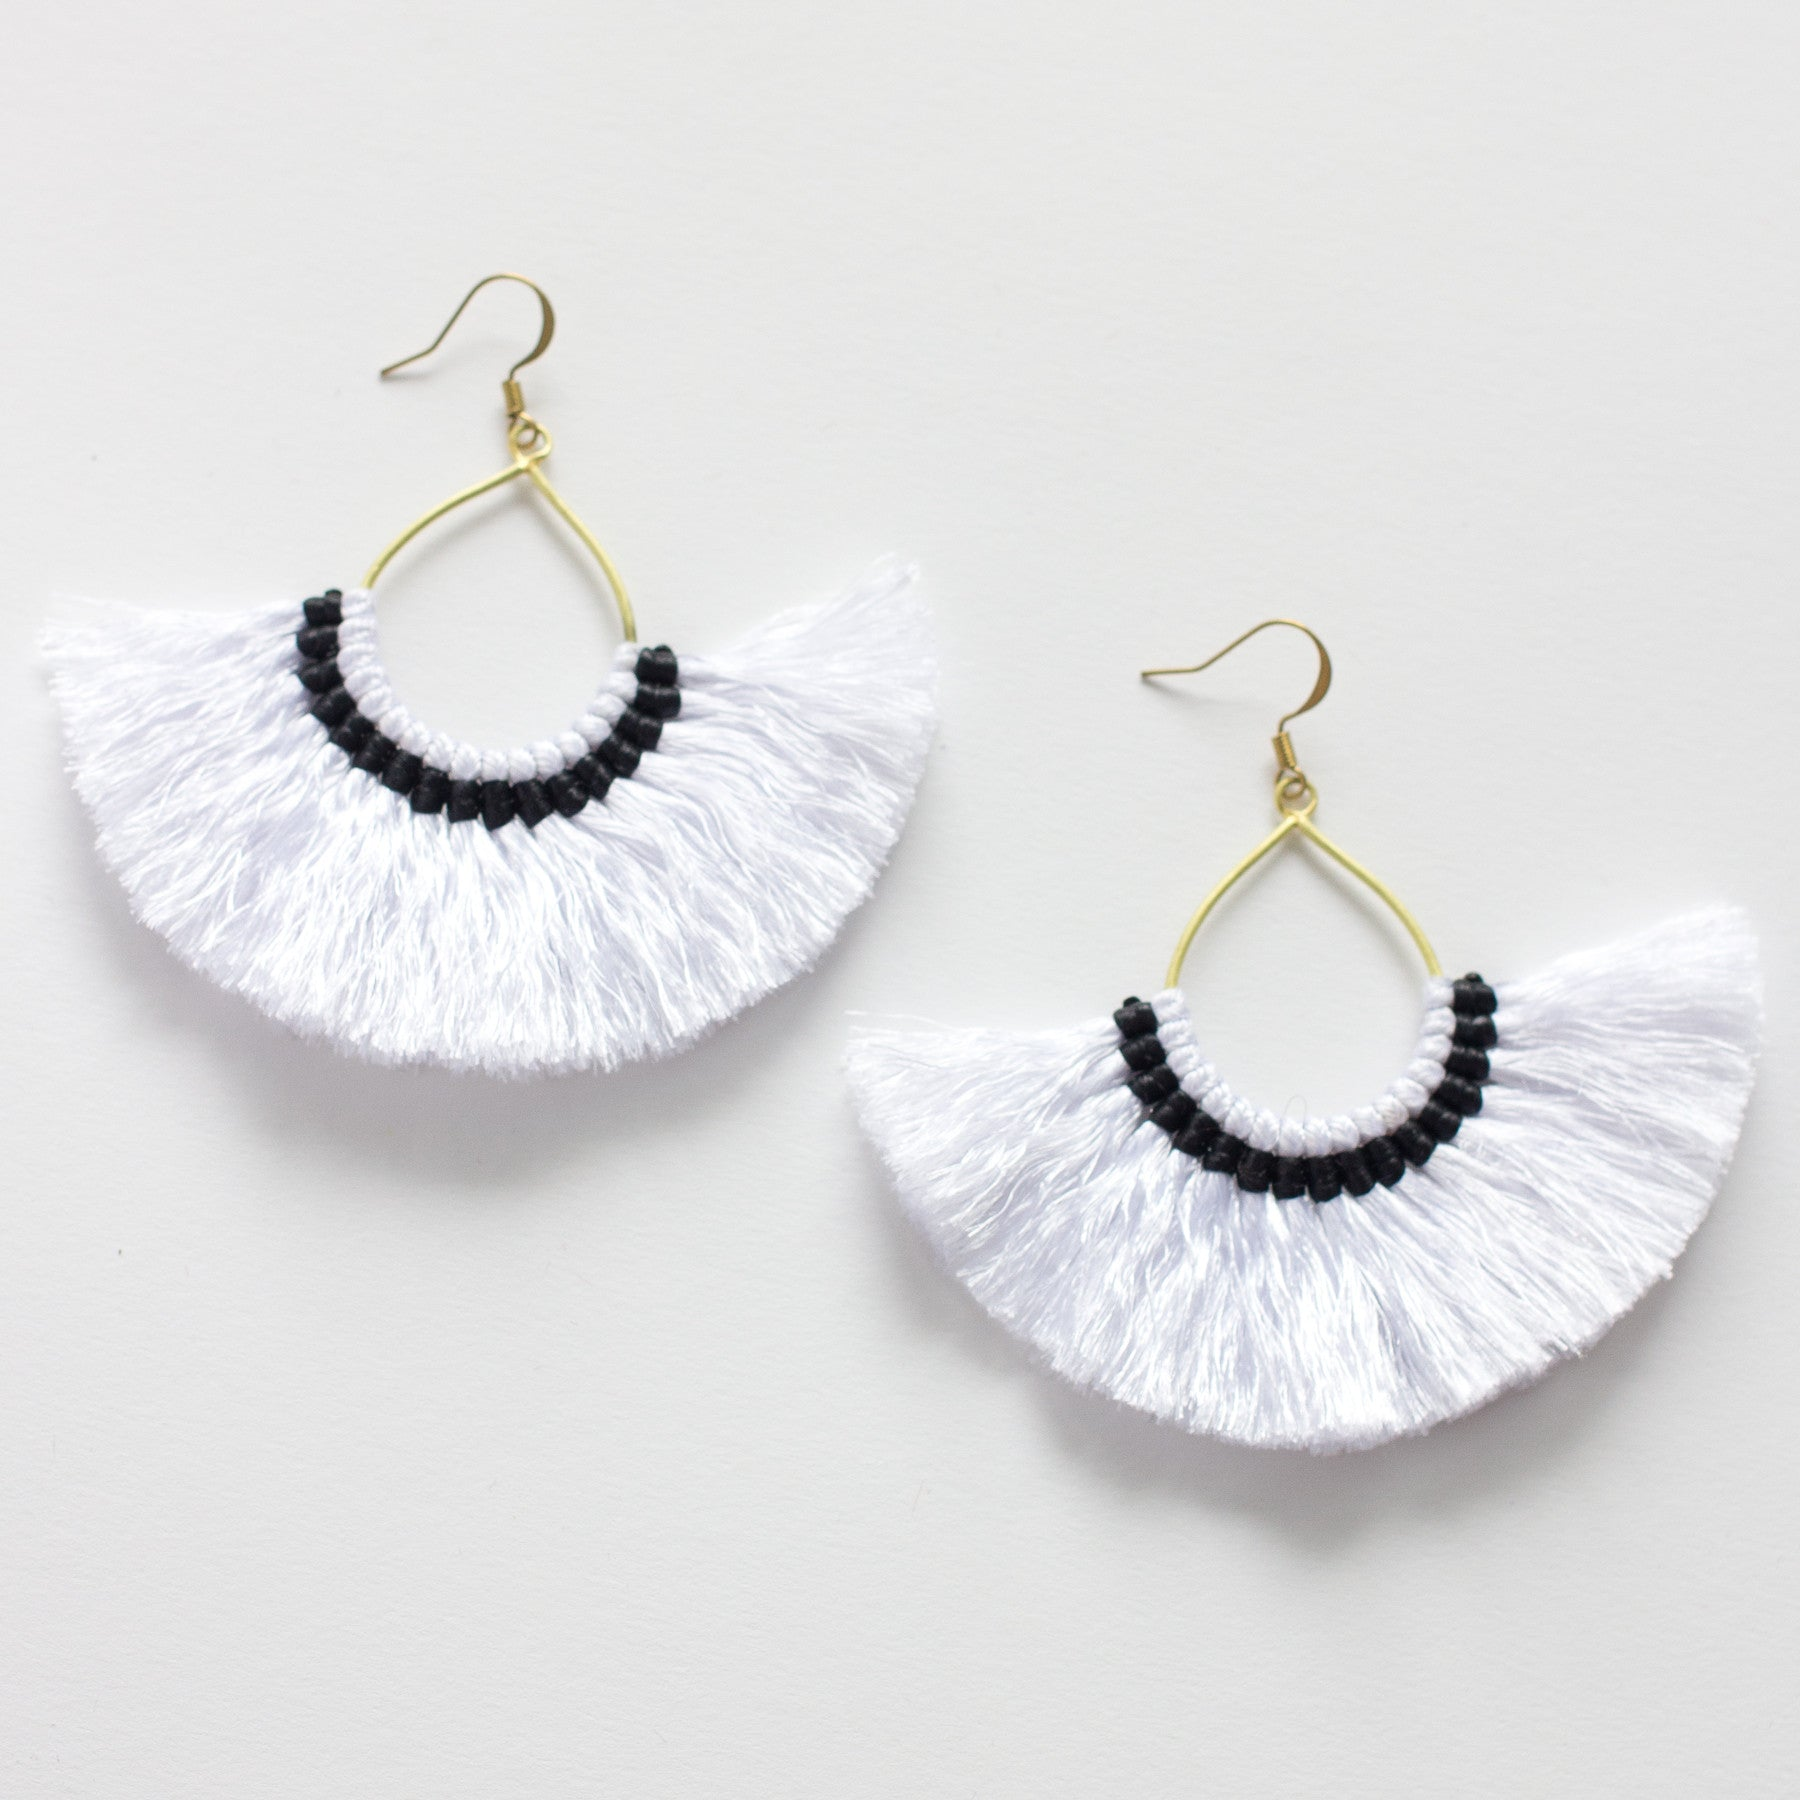 earrings tassle black tassel hoop happiness en boutique